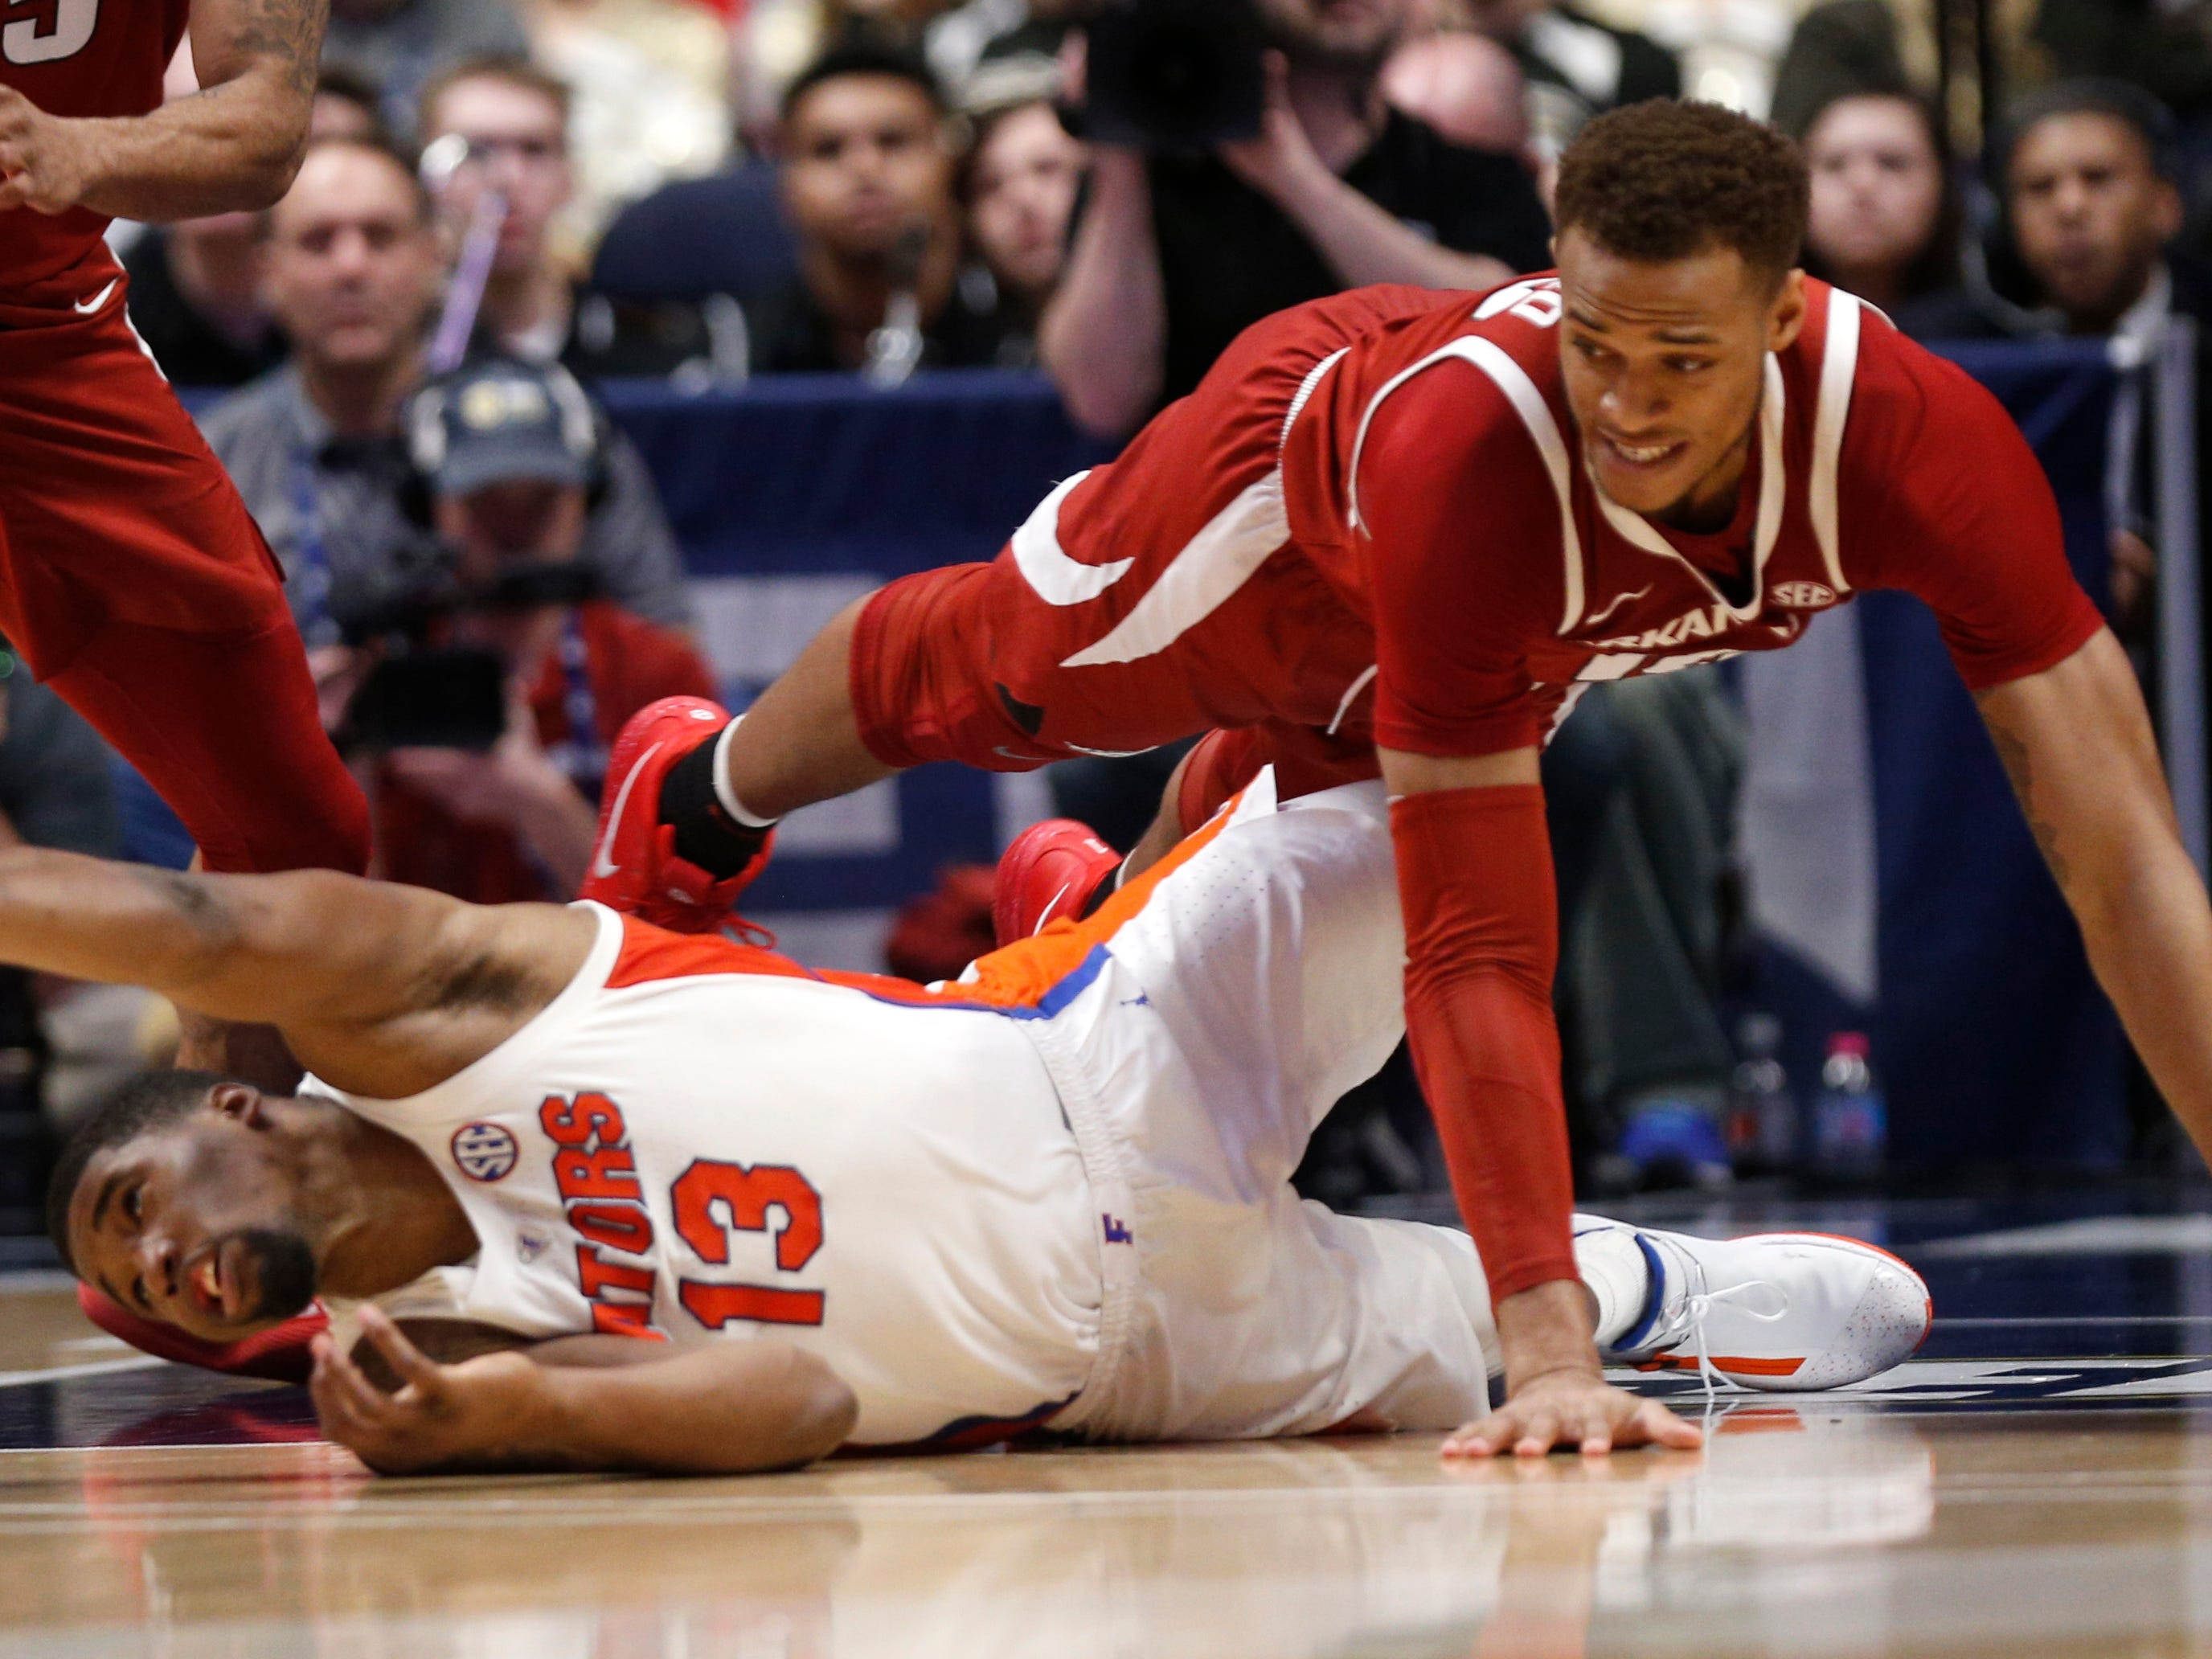 Florida center Kevarrius Hayes (13) and Arkansas forward Daniel Gafford (10) battle for a loose ball during the second half of the SEC Men's Basketball Tournament game at Bridgestone Arena in Nashville, Tenn., Thursday, March 14, 2019.